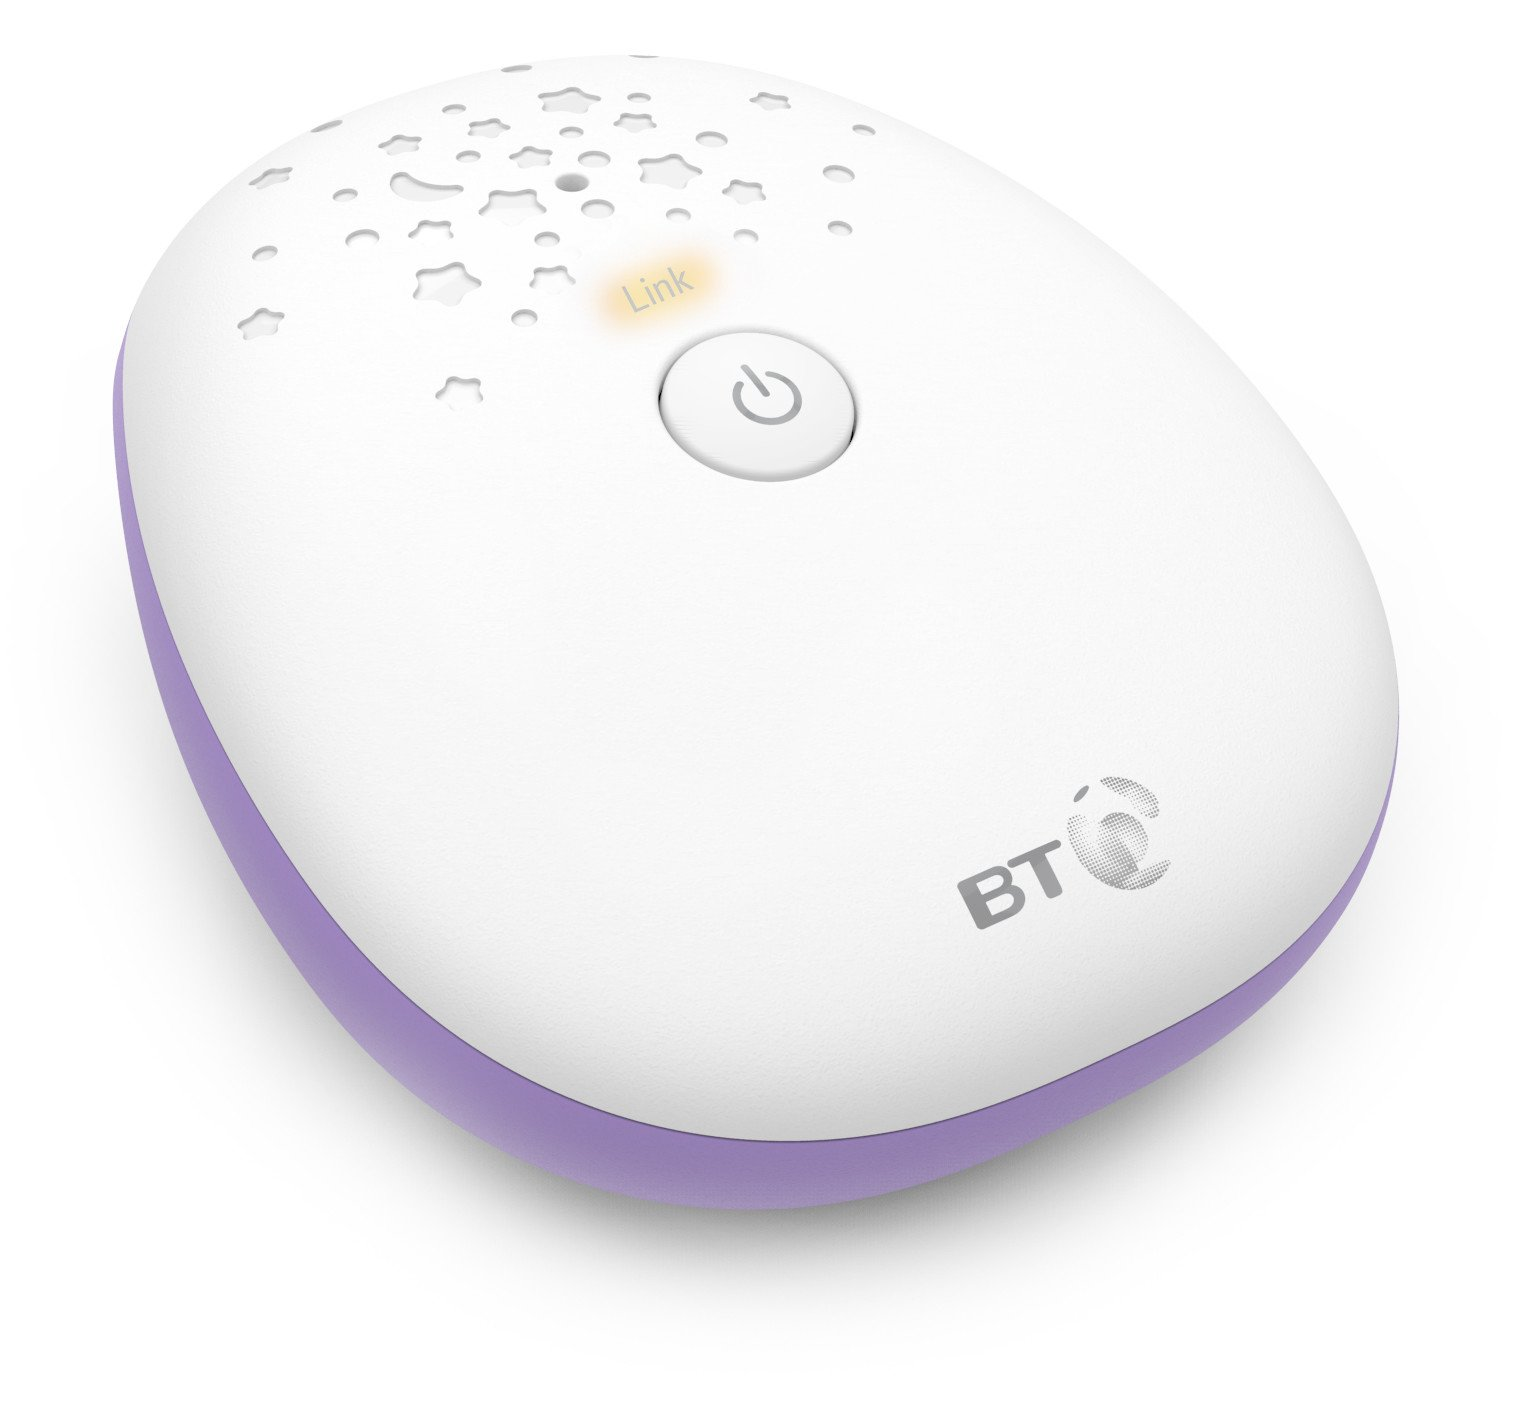 BT Digital Audio Baby Monitor 400 IREALIST Interference free digital hd sound Sound sensitive leds - for visual alert The batteries are charged in the Parent unit 2